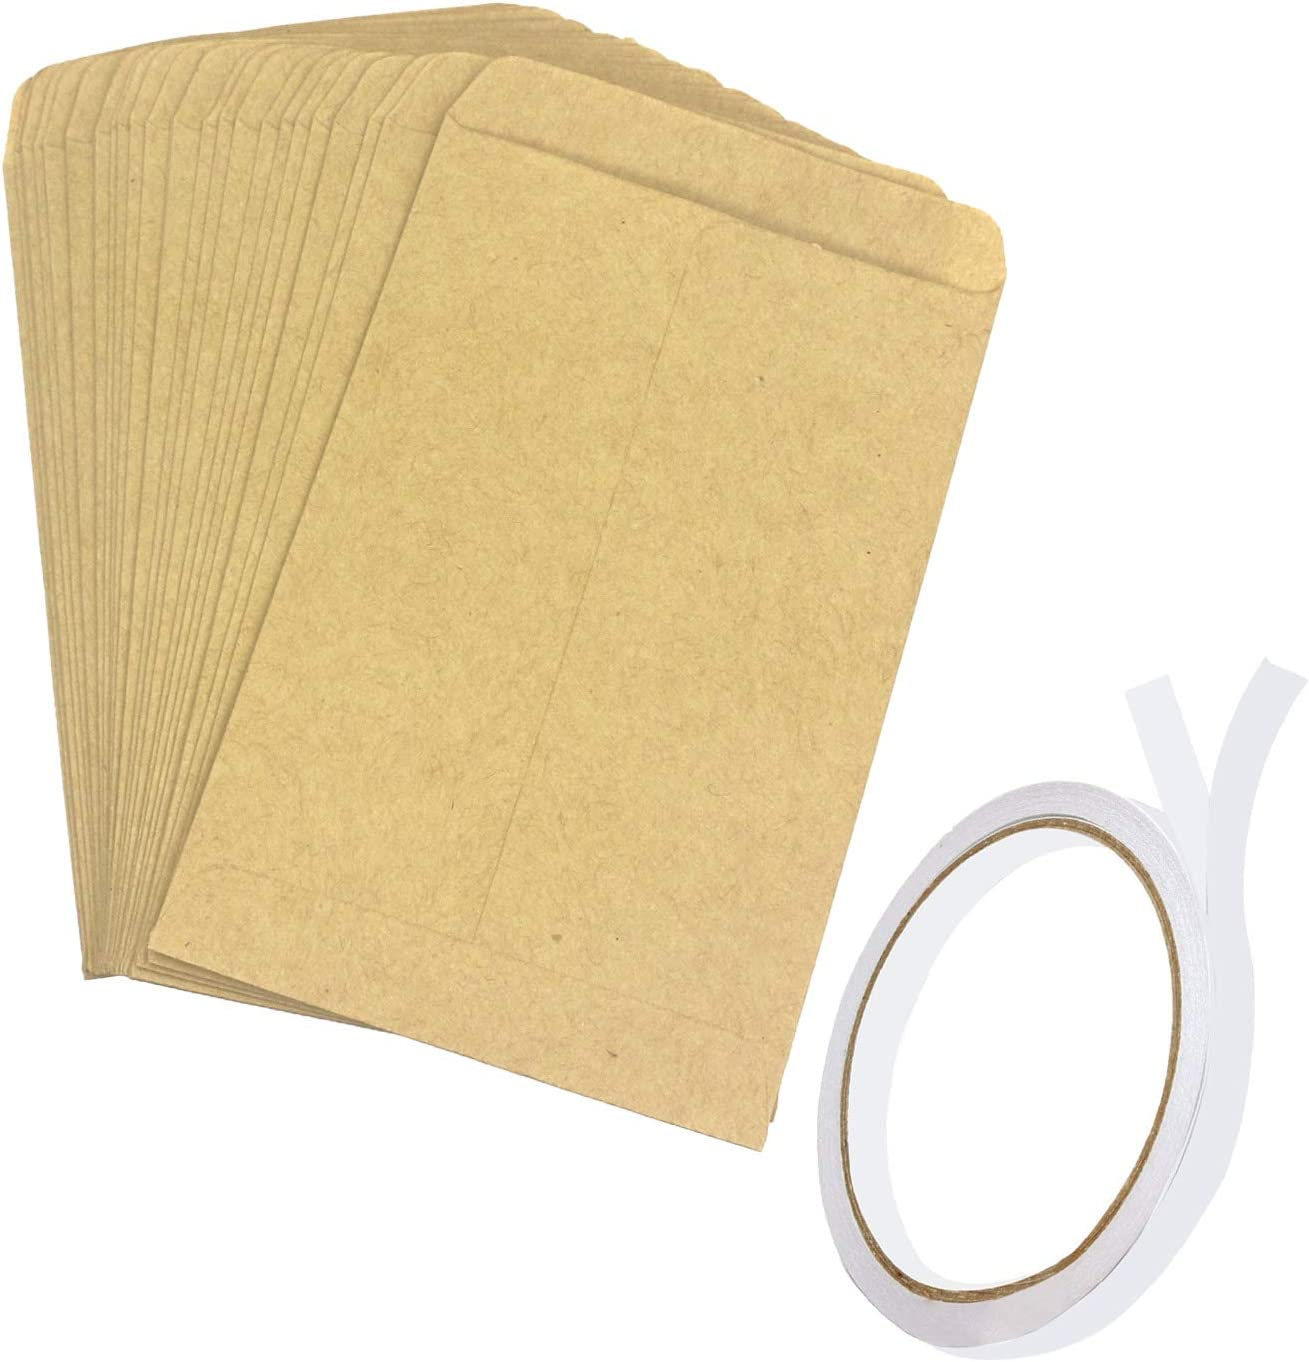 Brown Kraft Coin Packets Mini Envelopes Seed Paper Bags for Home and Garden Use 4.7x3.15Inches Trasfit 150 Pack Seed Envelopes with Double Sided Adhesive Tape